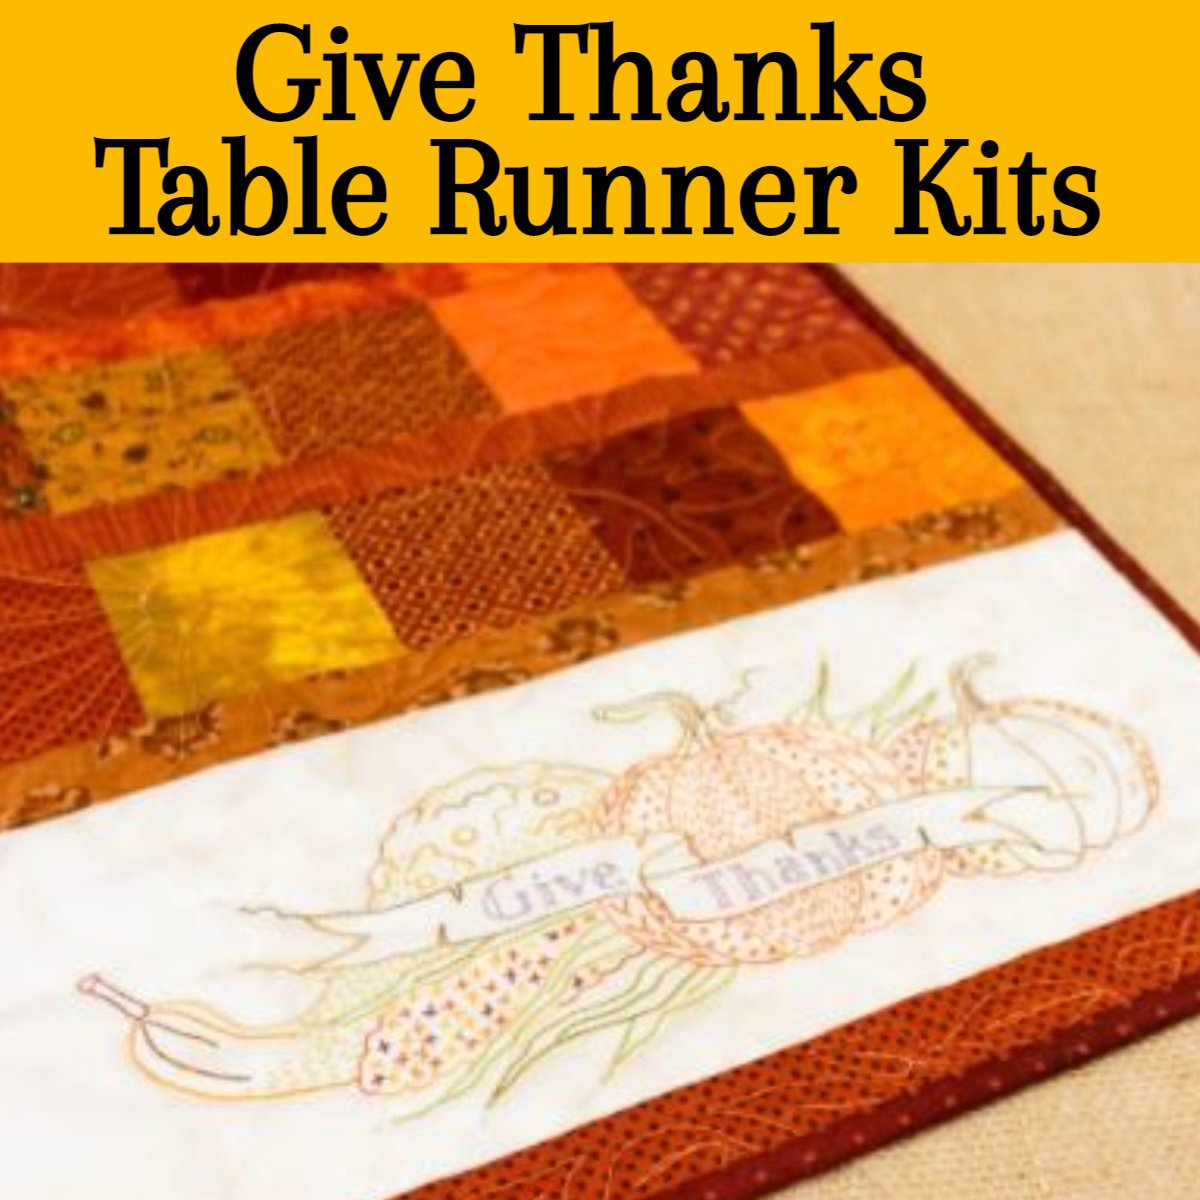 Give Thanks Table Runner Kits